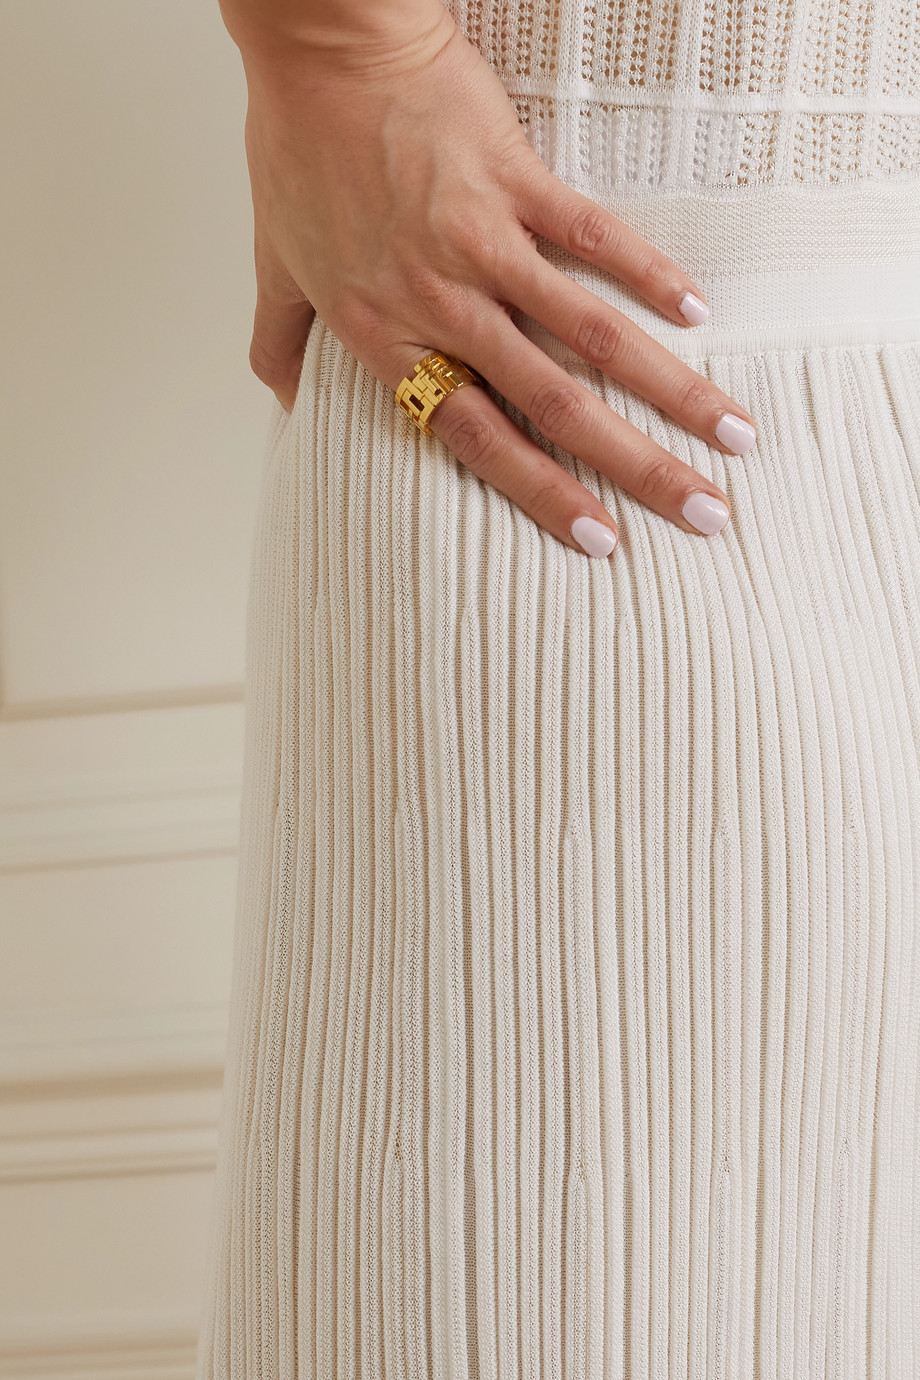 LEDA MADERA Goldie gold-plated crystal ring